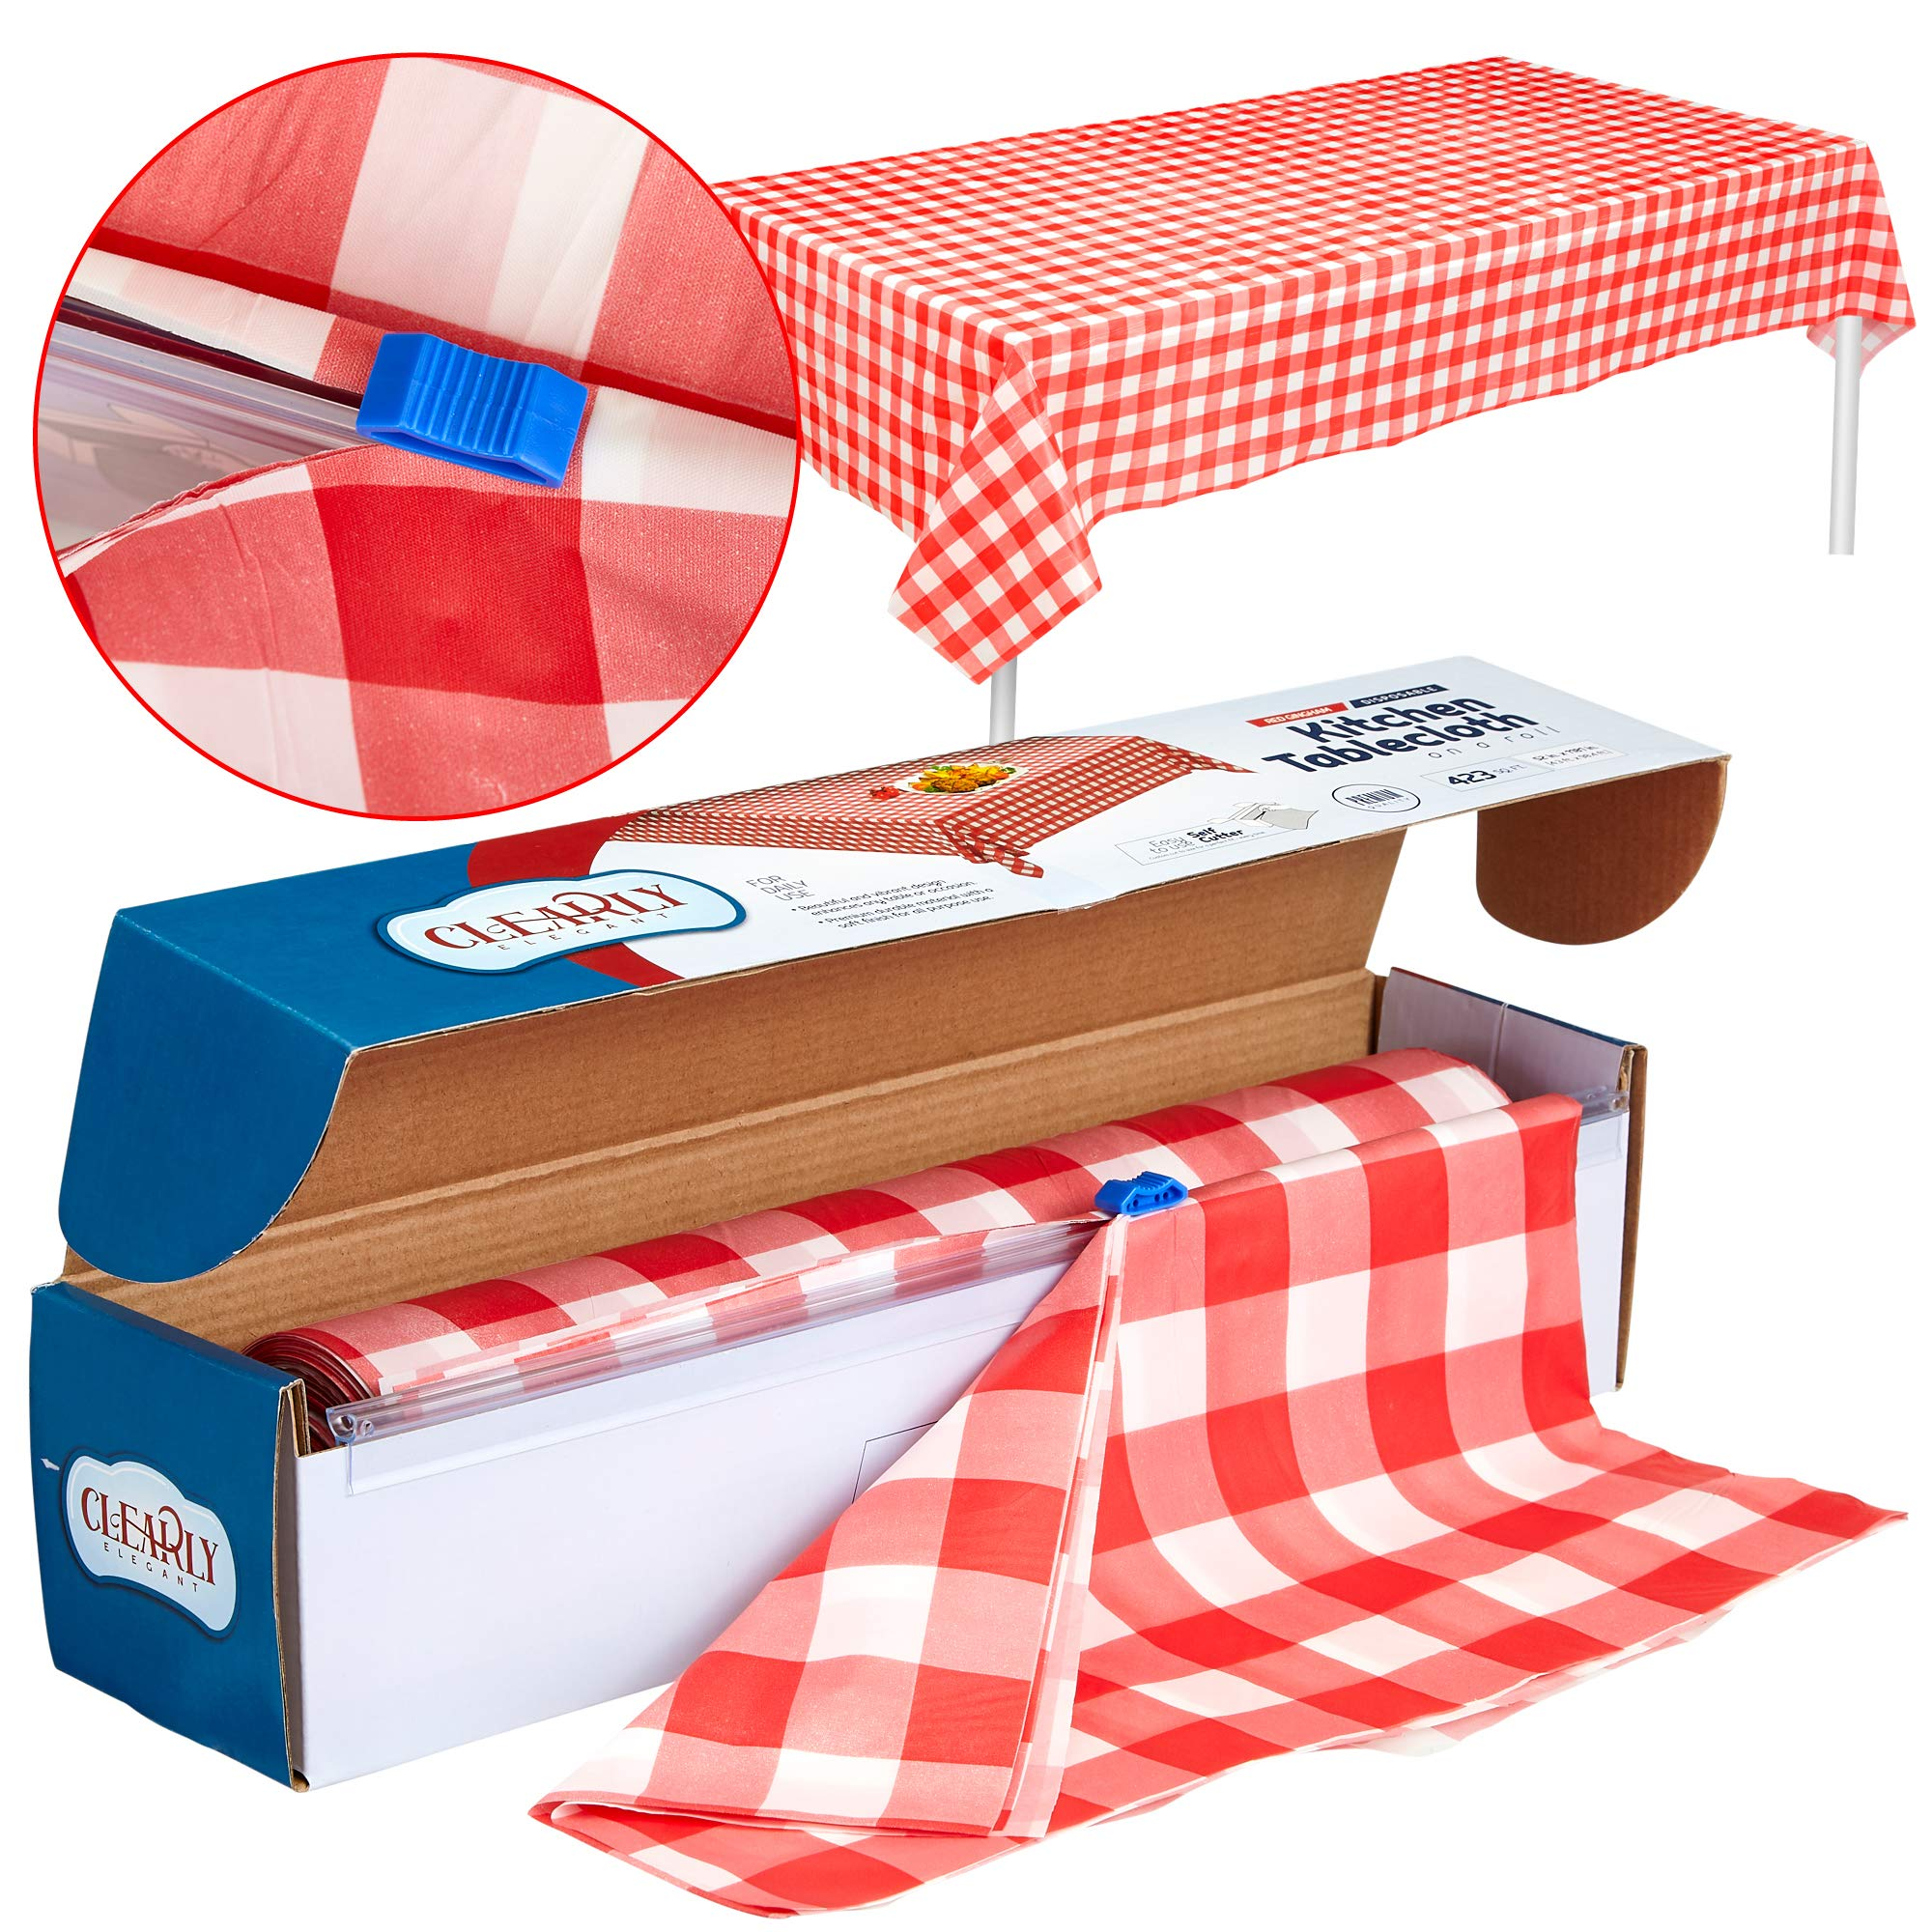 Red Gingham Plastic Tablecloth Roll With Cutter, 100' x 52'' - Heavy Duty Party Table Cloth In Self Cutting Box - For Picnics, BBQs, and Birthday Parties - By Clearly Elegant by Clearly Elegant